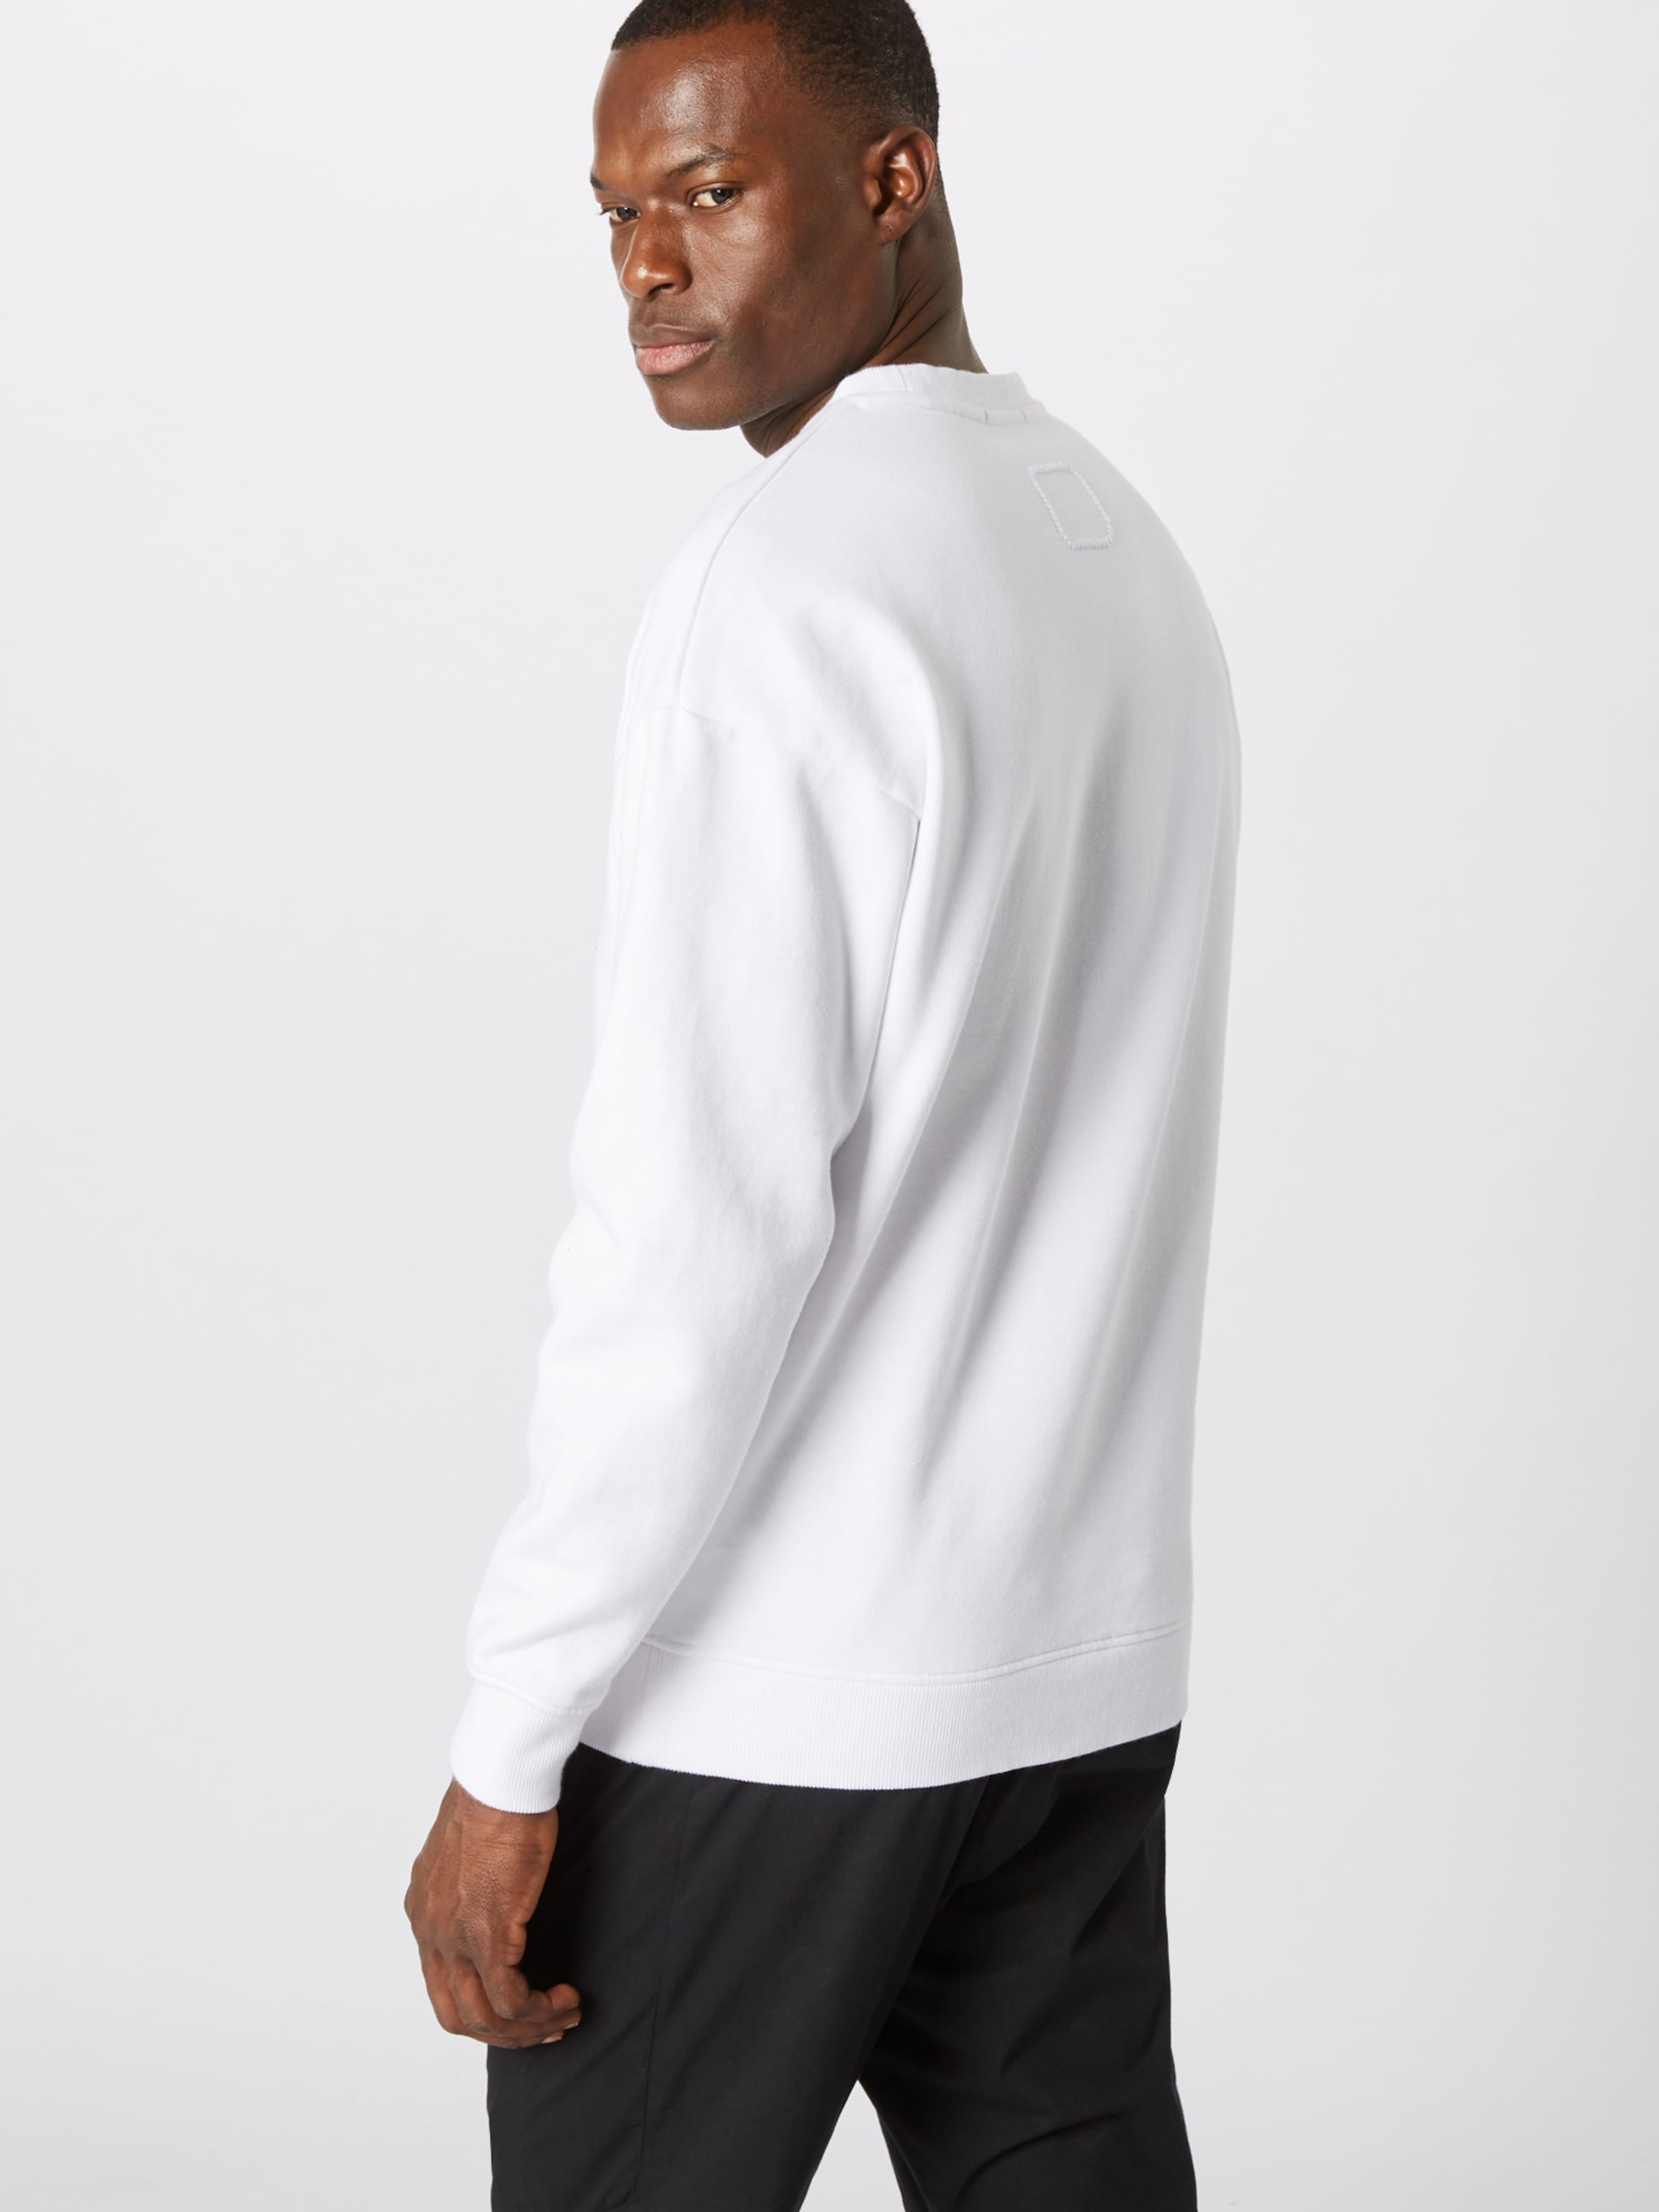 shirt Blanc Sweat Tigha En 'deleg' ynw0PN8Ovm